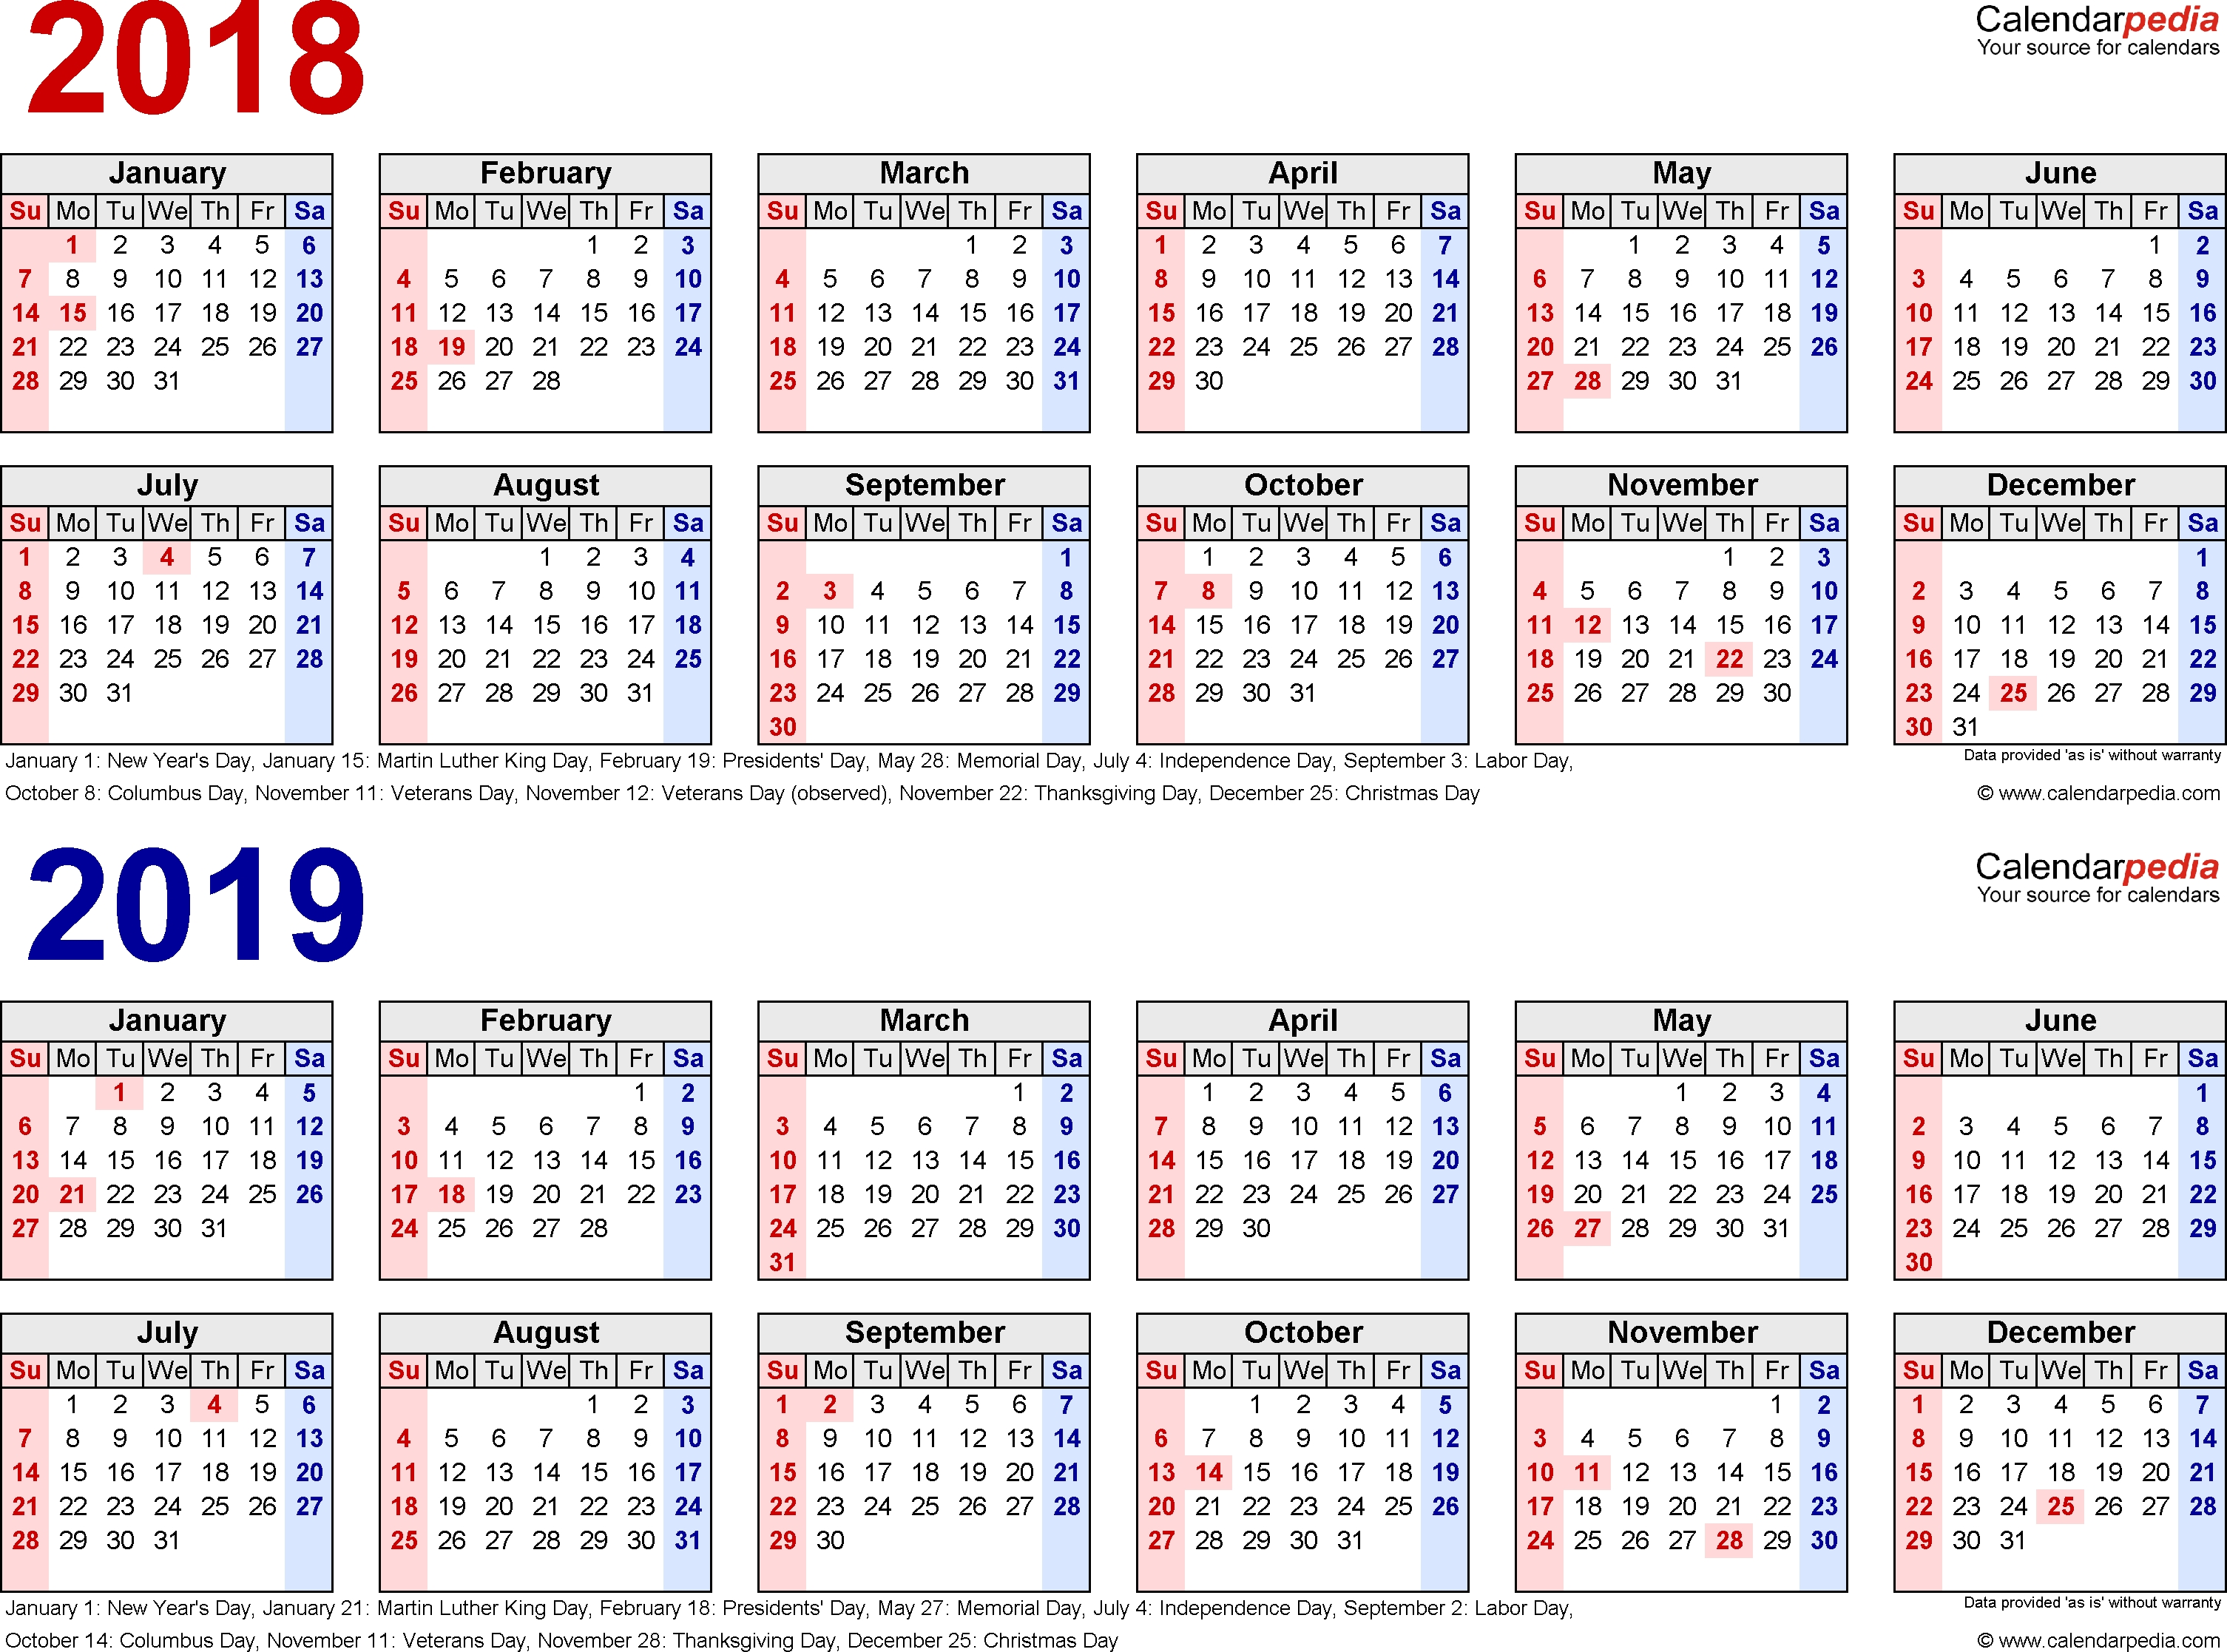 2018-2019 Calendar - Free Printable Two-Year Pdf Calendars intended for Free Printable Calendar With Lines 2019 And 2020